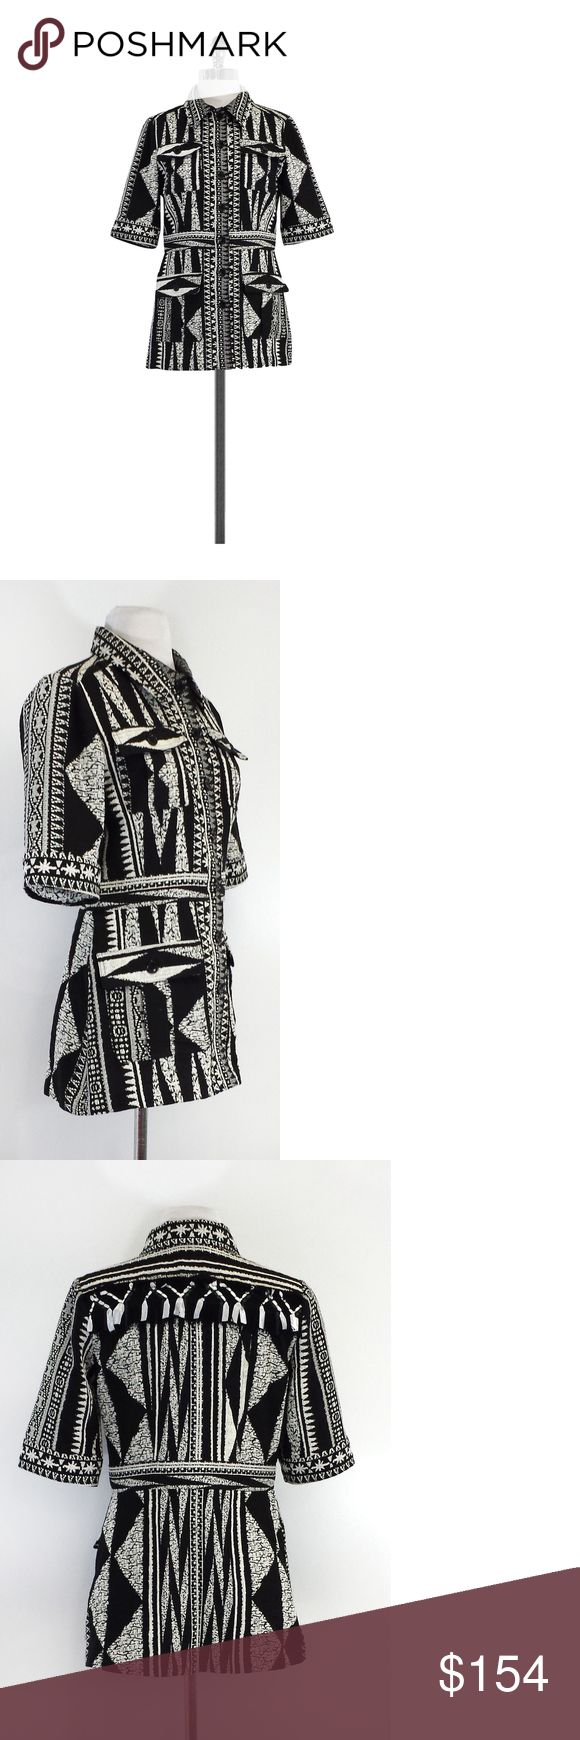 """Anna Sui- Black & White Print Short Sleeve Jacket Sz S Size S Black & White Print Short Sleeve Jacket Self 46% polyester 38% cotton 16% viscose Lining 100% acetate Made in USA Collared Aztec print Button chest & hip pockets Buttons down front Back green, black & white fringe & tassel design Shoulder to hem 27.5"""" Anna Sui Jackets & Coats Jackets & Coats"""